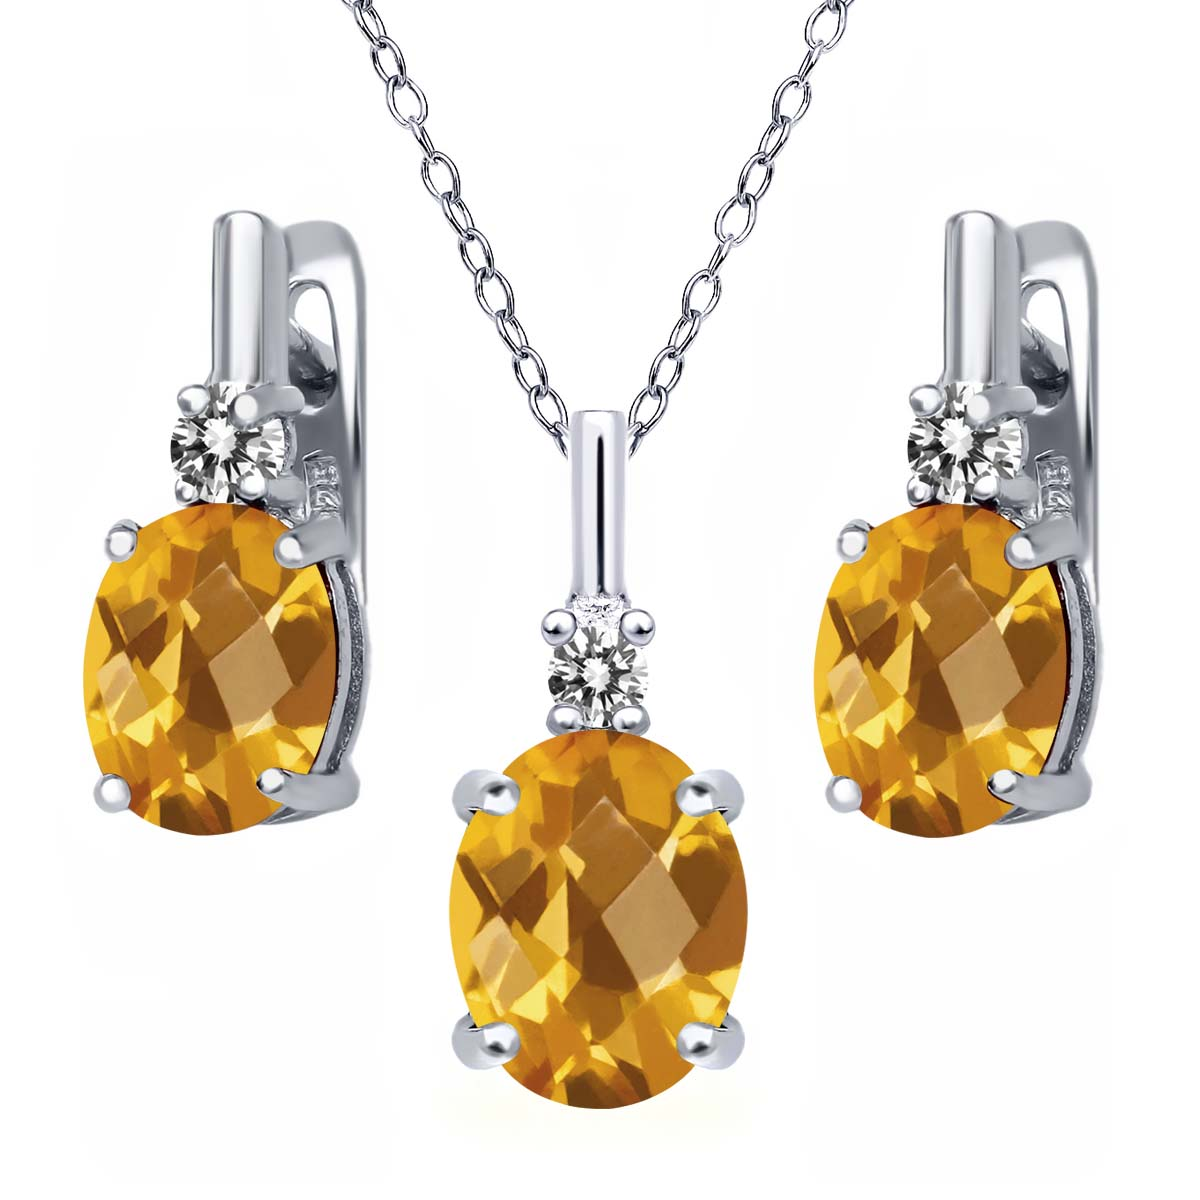 4.87 Ct Oval Checkerboard Yellow Citrine White Diamond 925 Silver Pendant Earrings Set by